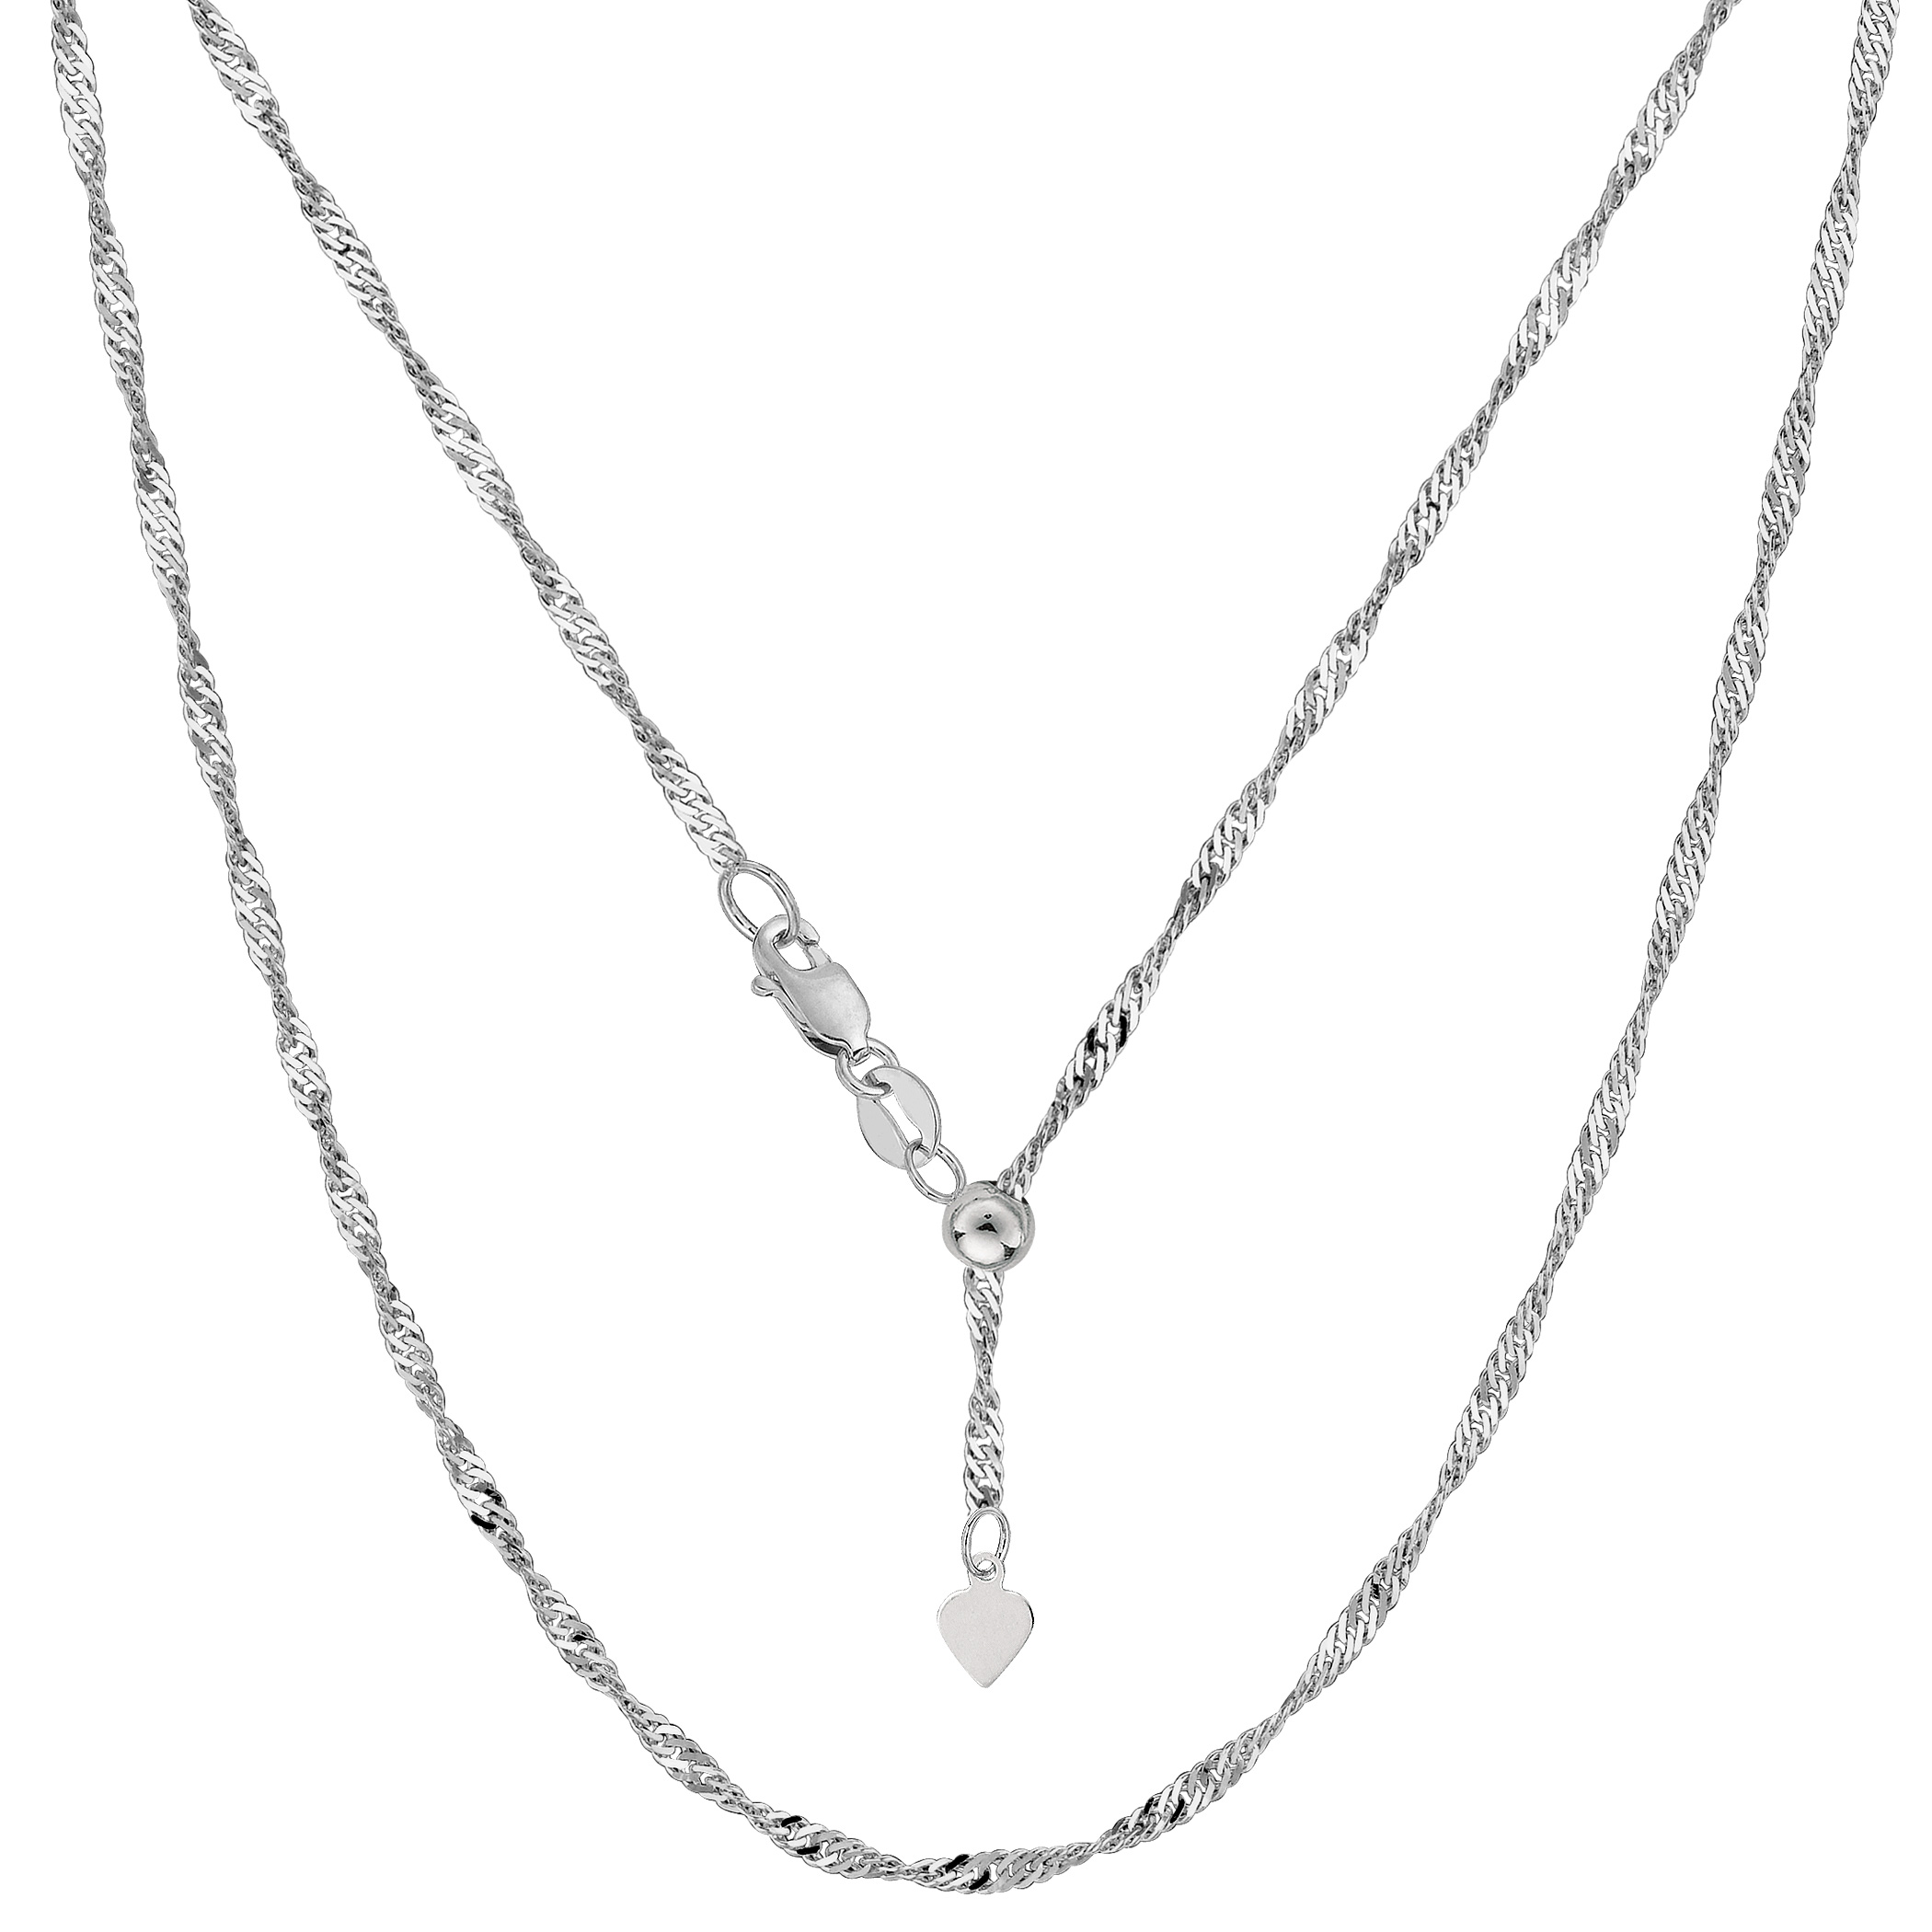 Sterling Silver Rhodium Plated 22  Sliding Adjustable Singapore Chain Necklace, 1.5mm Using it by itself or combining it with charms and pendants, this 22 inch long adjustable singapore style chain is a perfect addition to any jewelry fashionista collection.